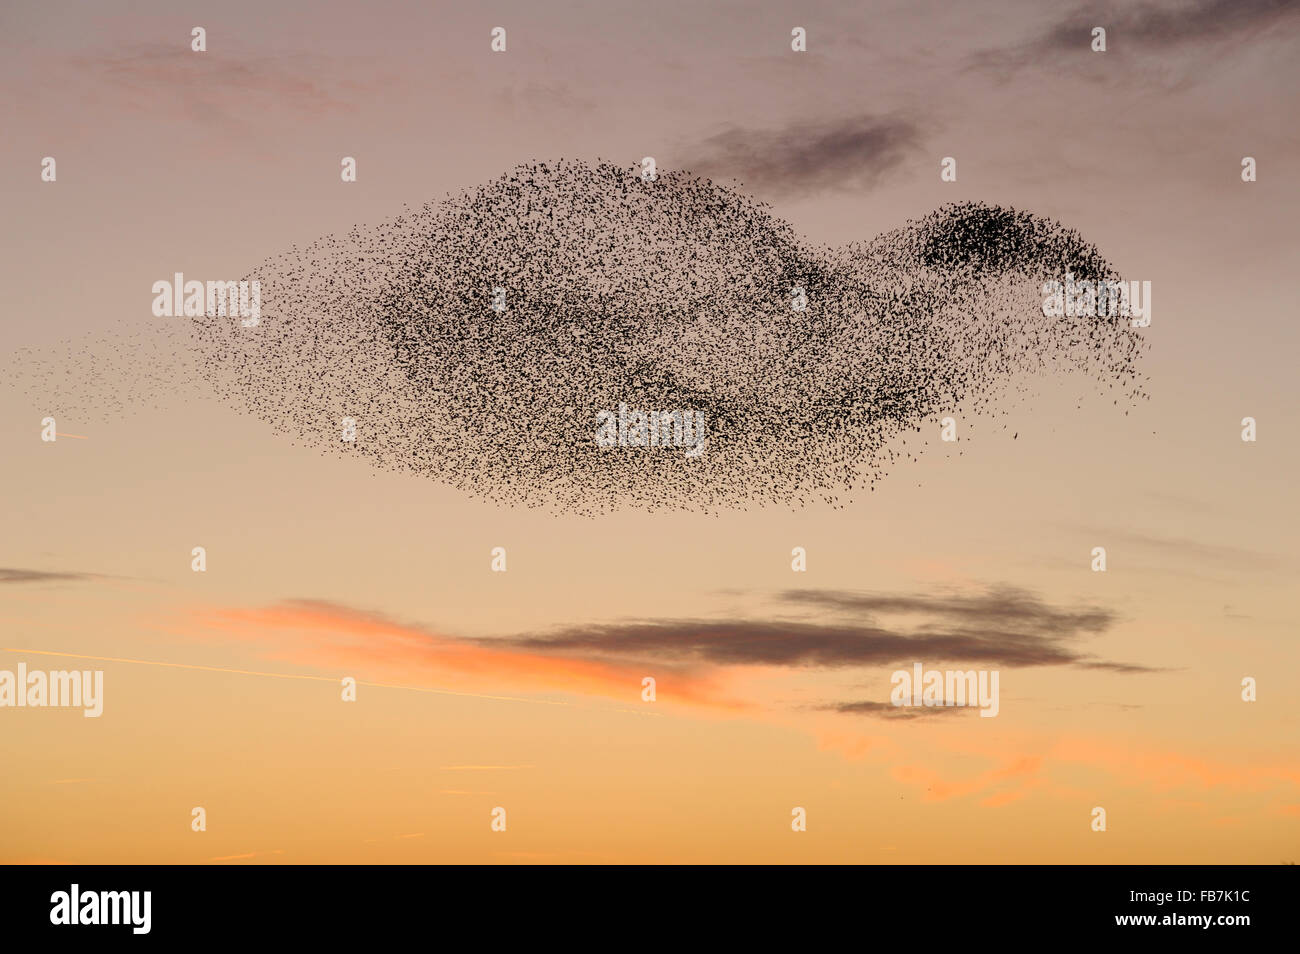 Starling flock (Sturnus vulgaris) at sunset, with peregrine falcon (Falco peregrinus) flying close to the flock. Stock Photo